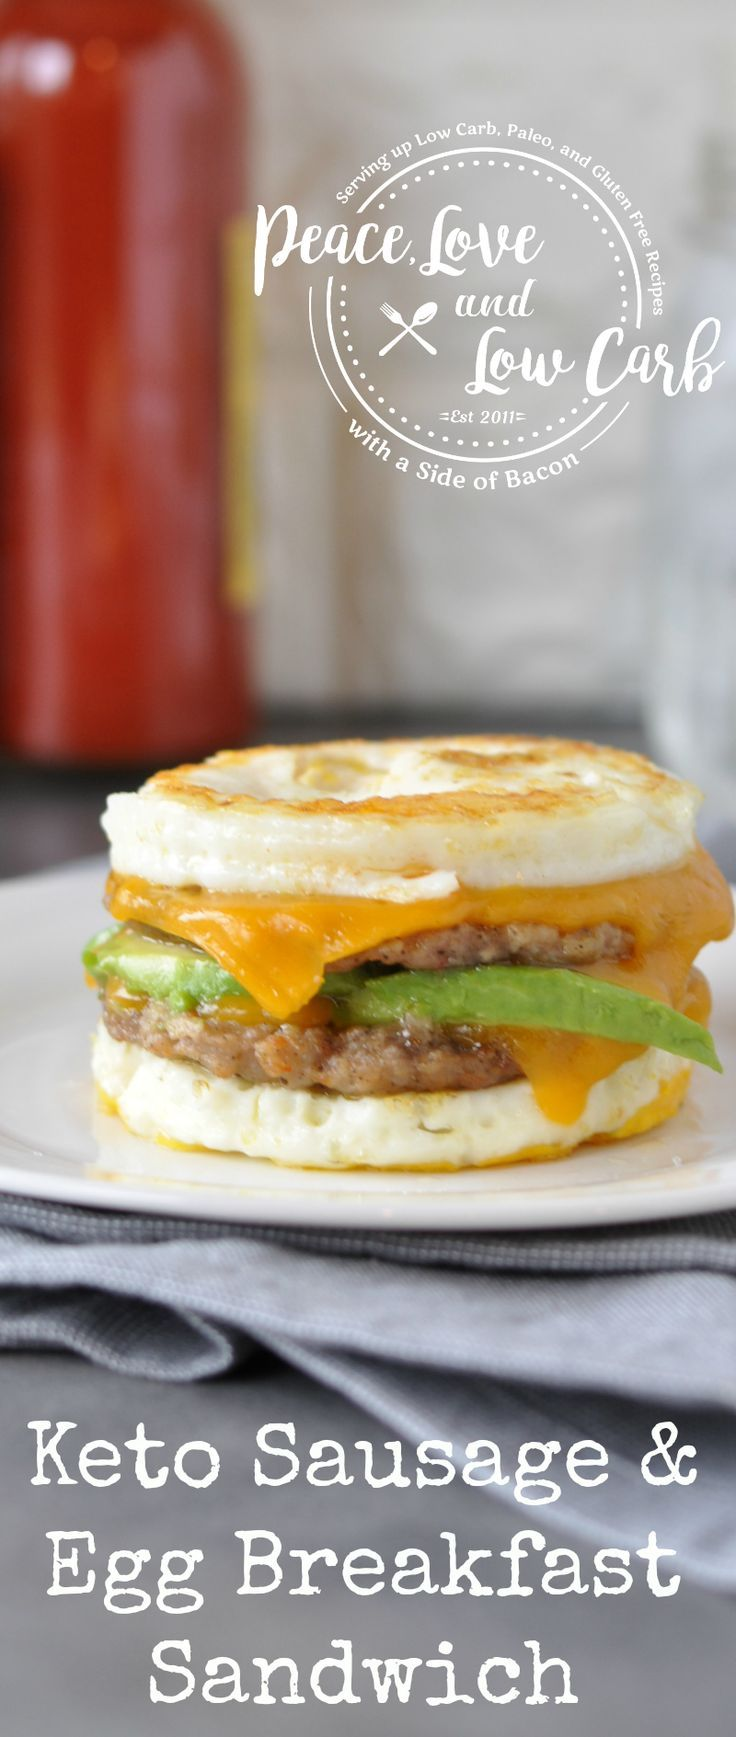 Keto Sausage and Egg Breakfast Sandwich | How tasty do these look? Instead of going to McDonald's - make your own! Full of healthy and nutritious ingredients like homemade sausage patties, avocado, eggs, butter and cheddar cheese. These are a wonderful low carb breakfast! Peace Love and Low Carb  via @PeaceLoveLoCarb: